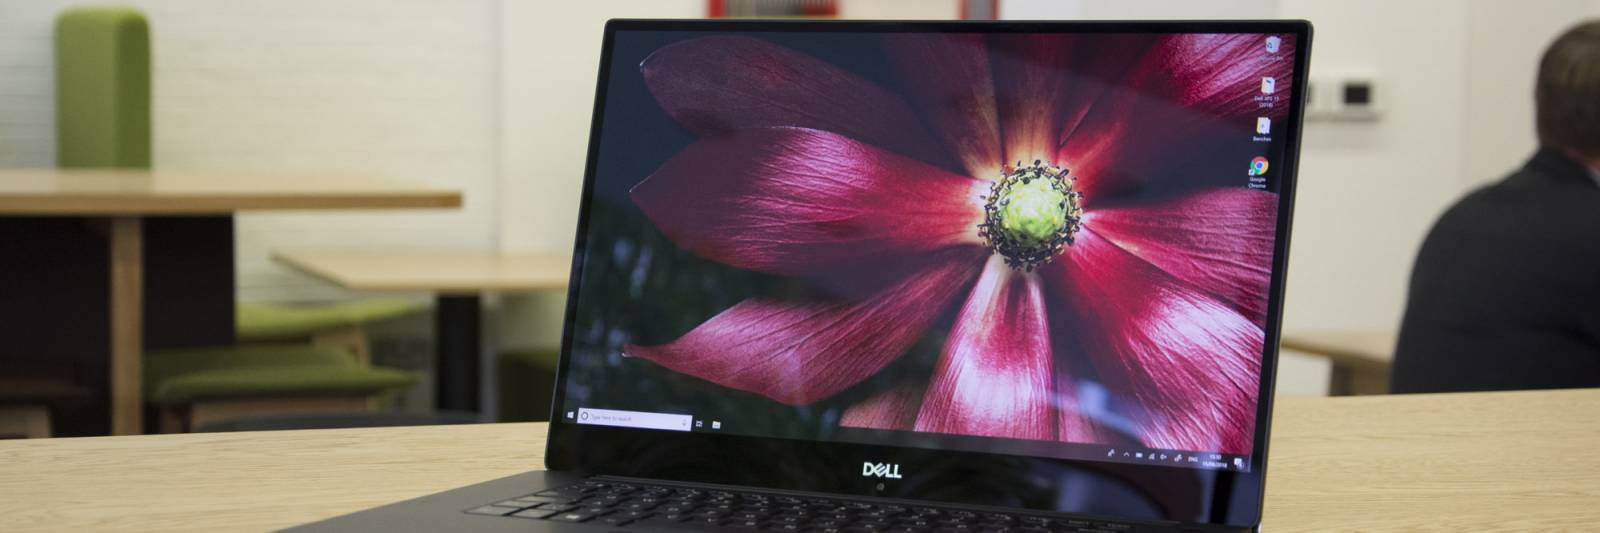 dell patches vulnerability affecting hundreds of computer models worldwide